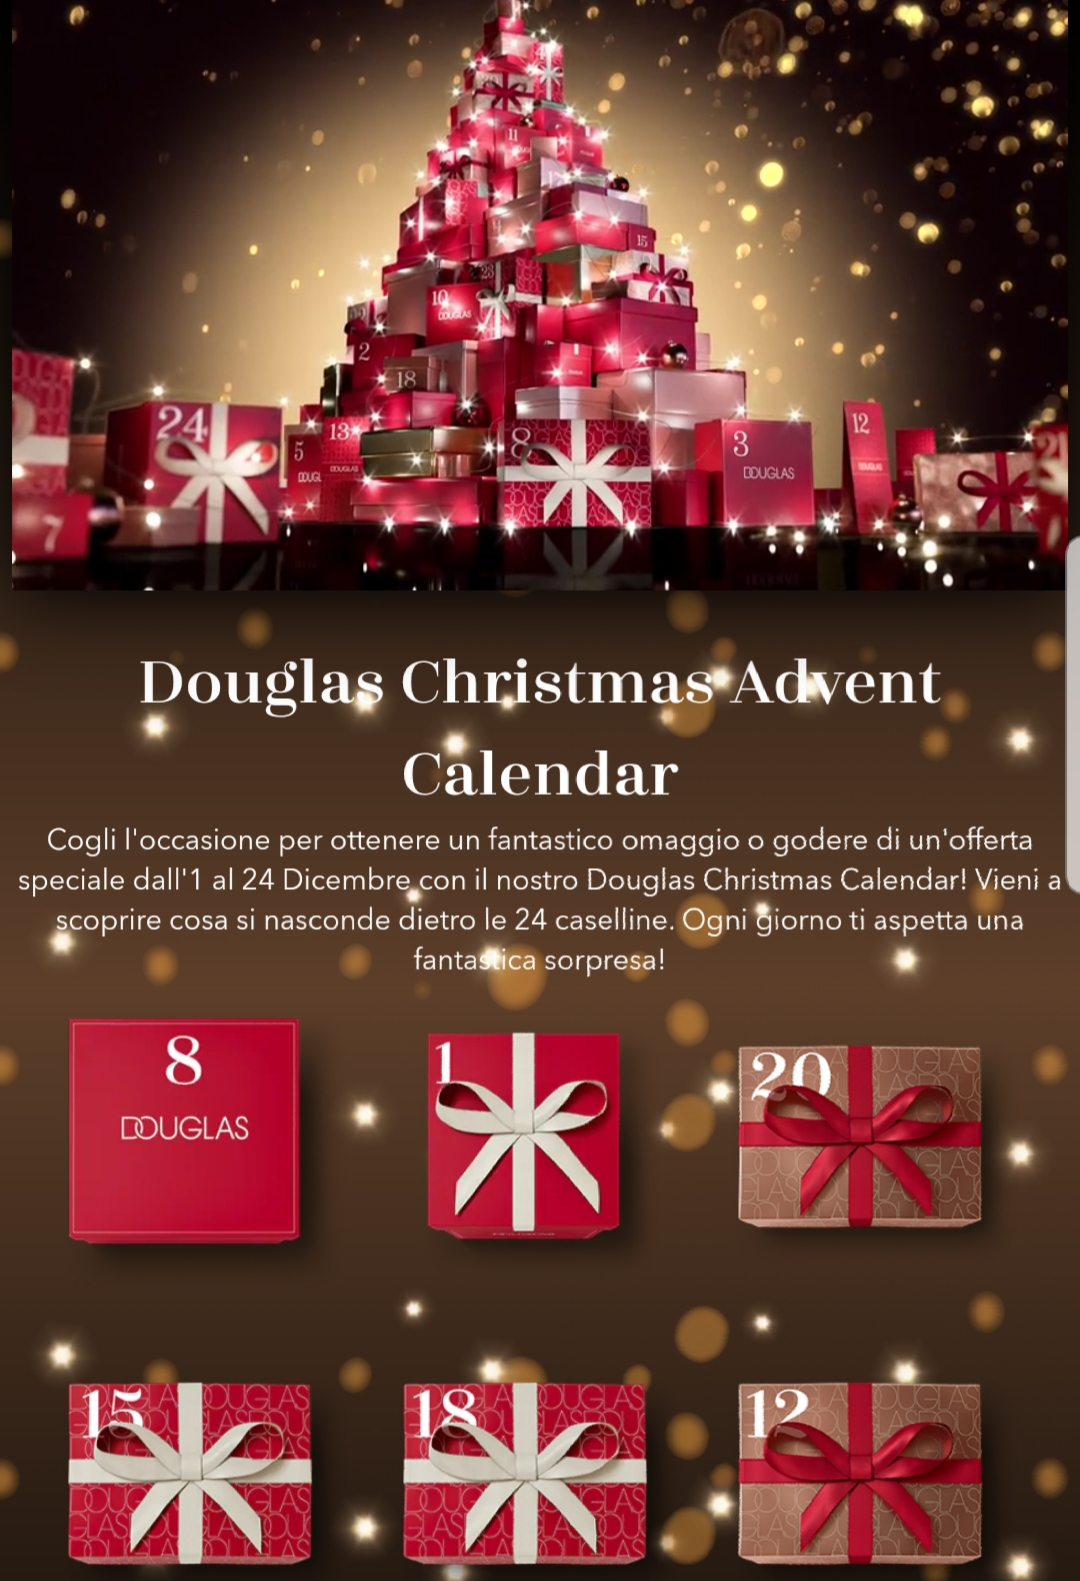 Douglas - Calendario dell'Avvento